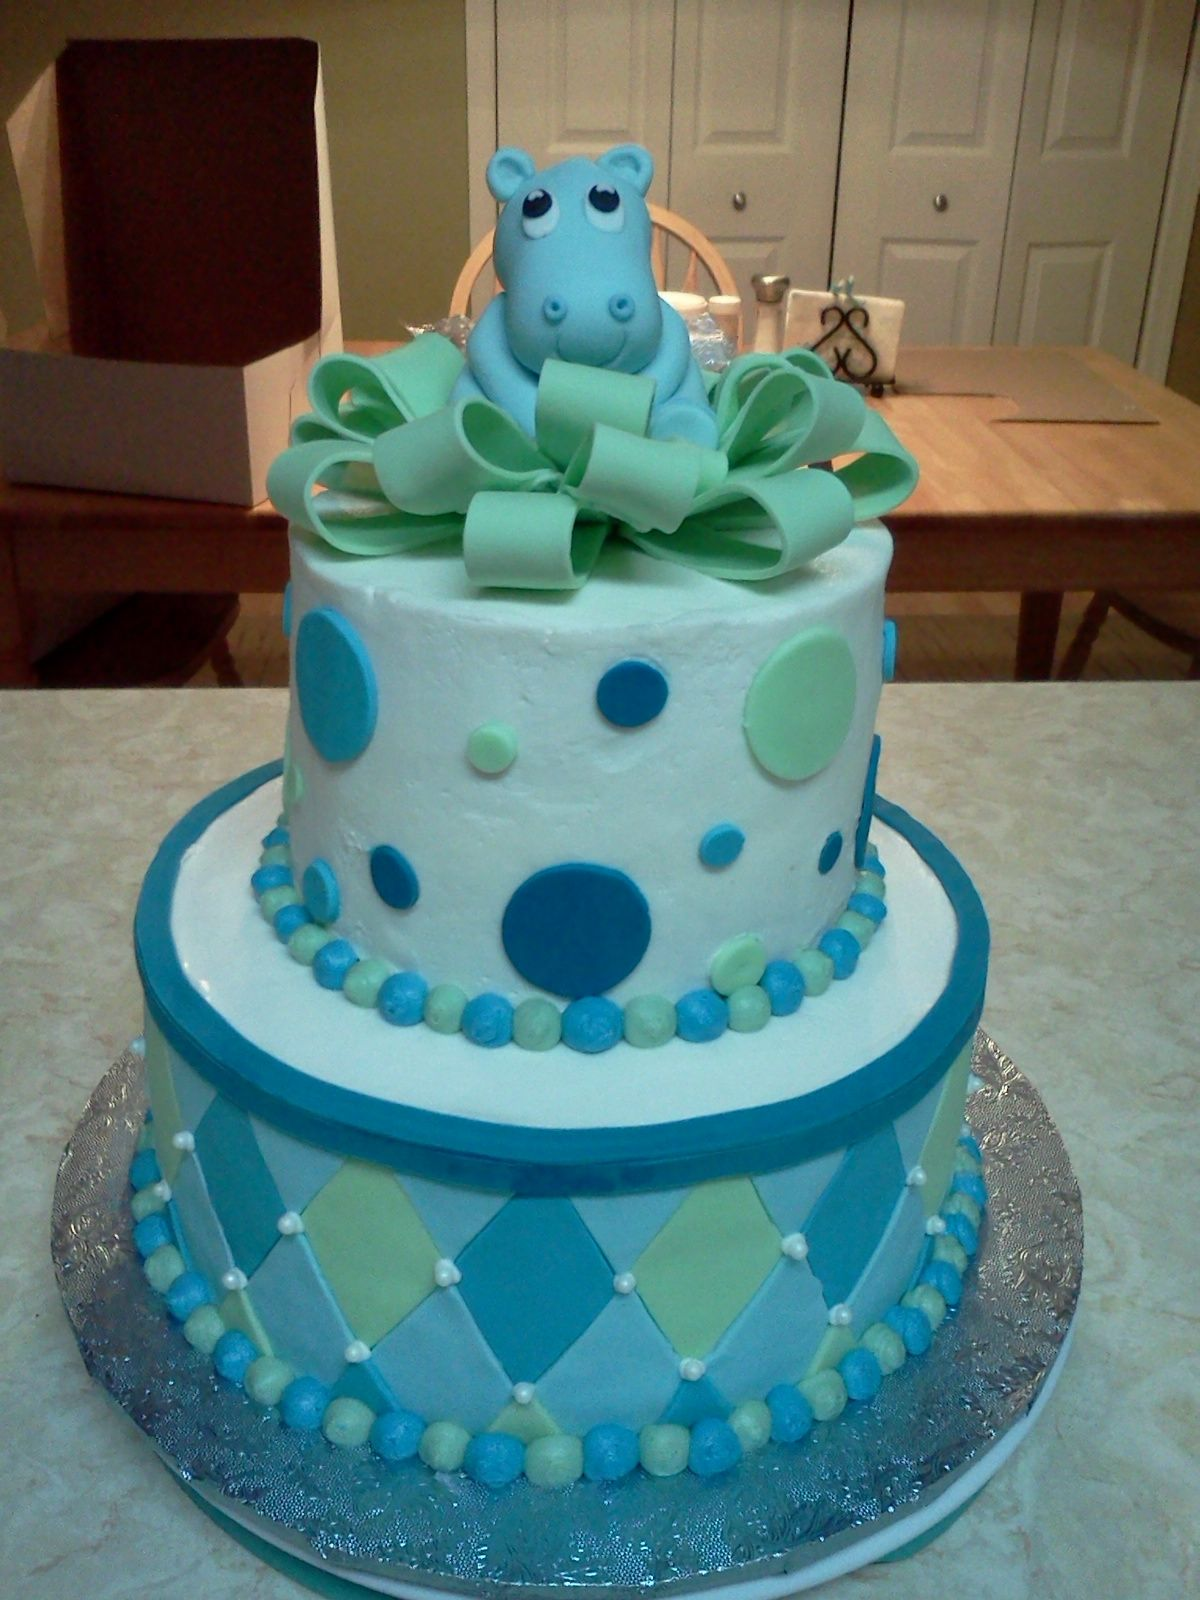 Hippo Cake I Want A Hippo Cake For My Bday Babys Hippo